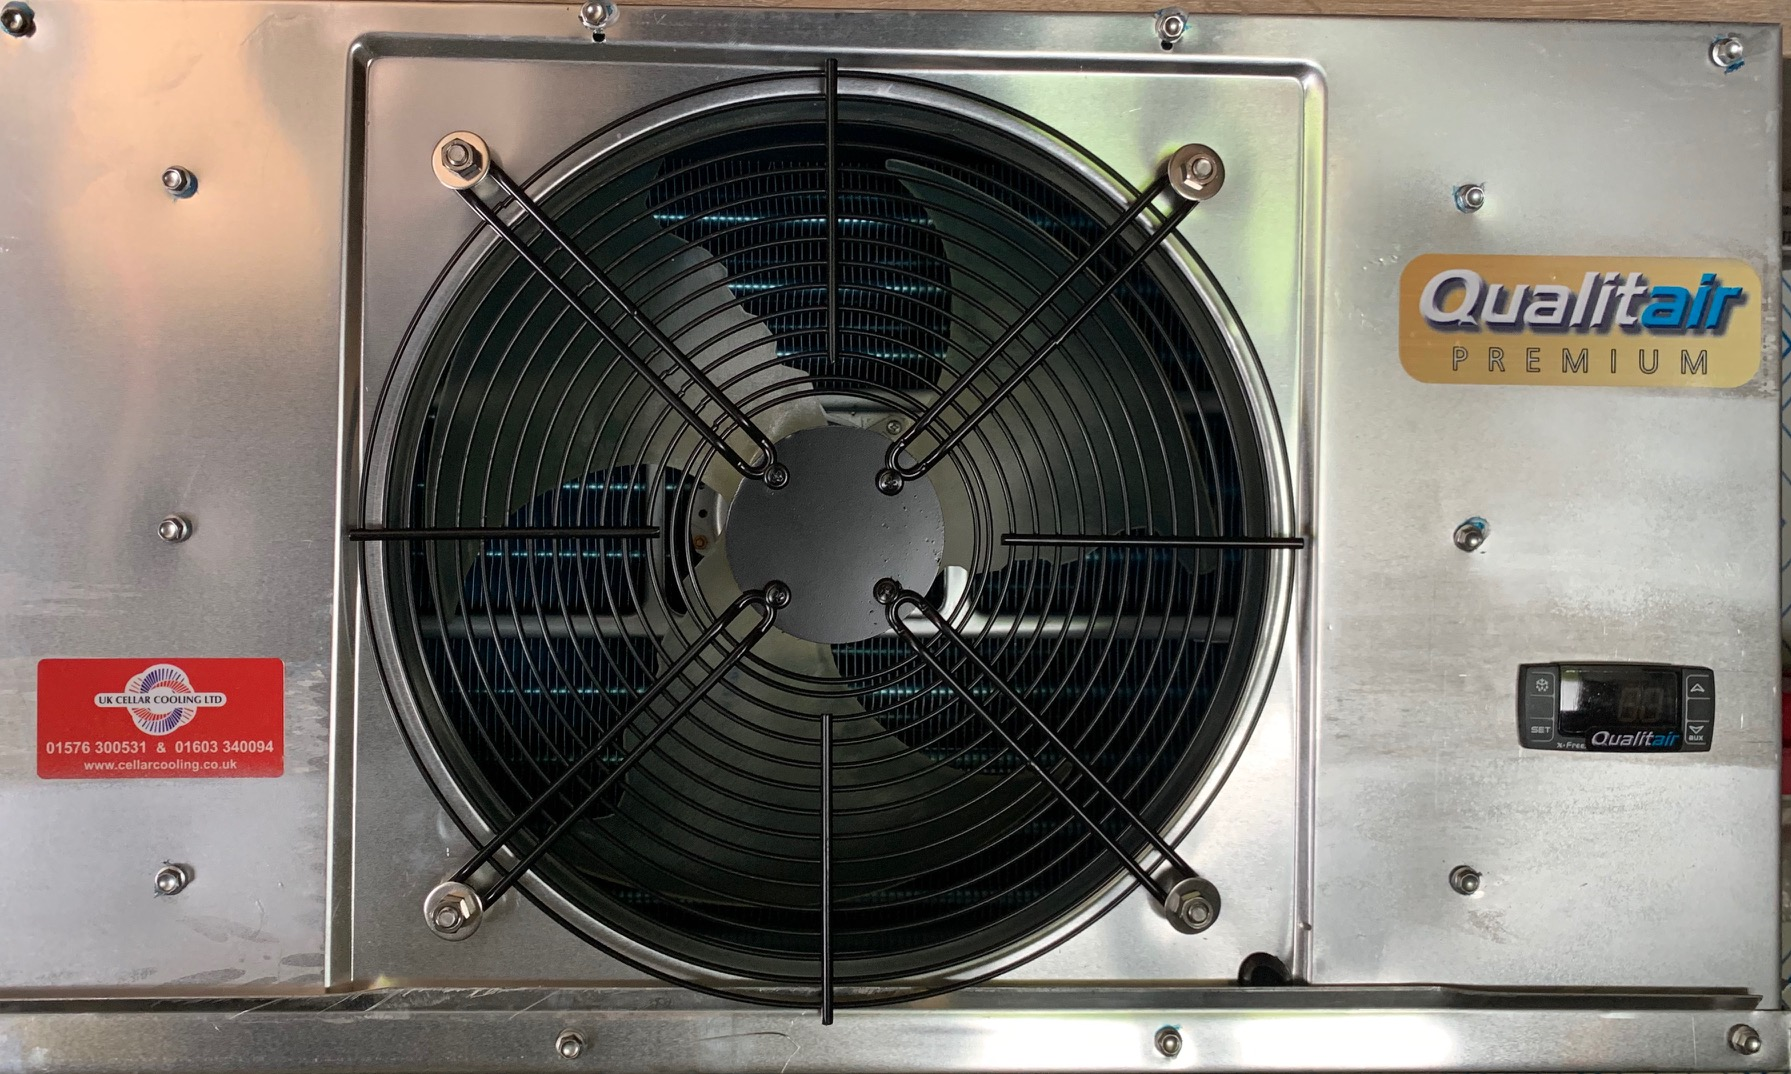 Qualitair Premium Cellar Cooler launched.